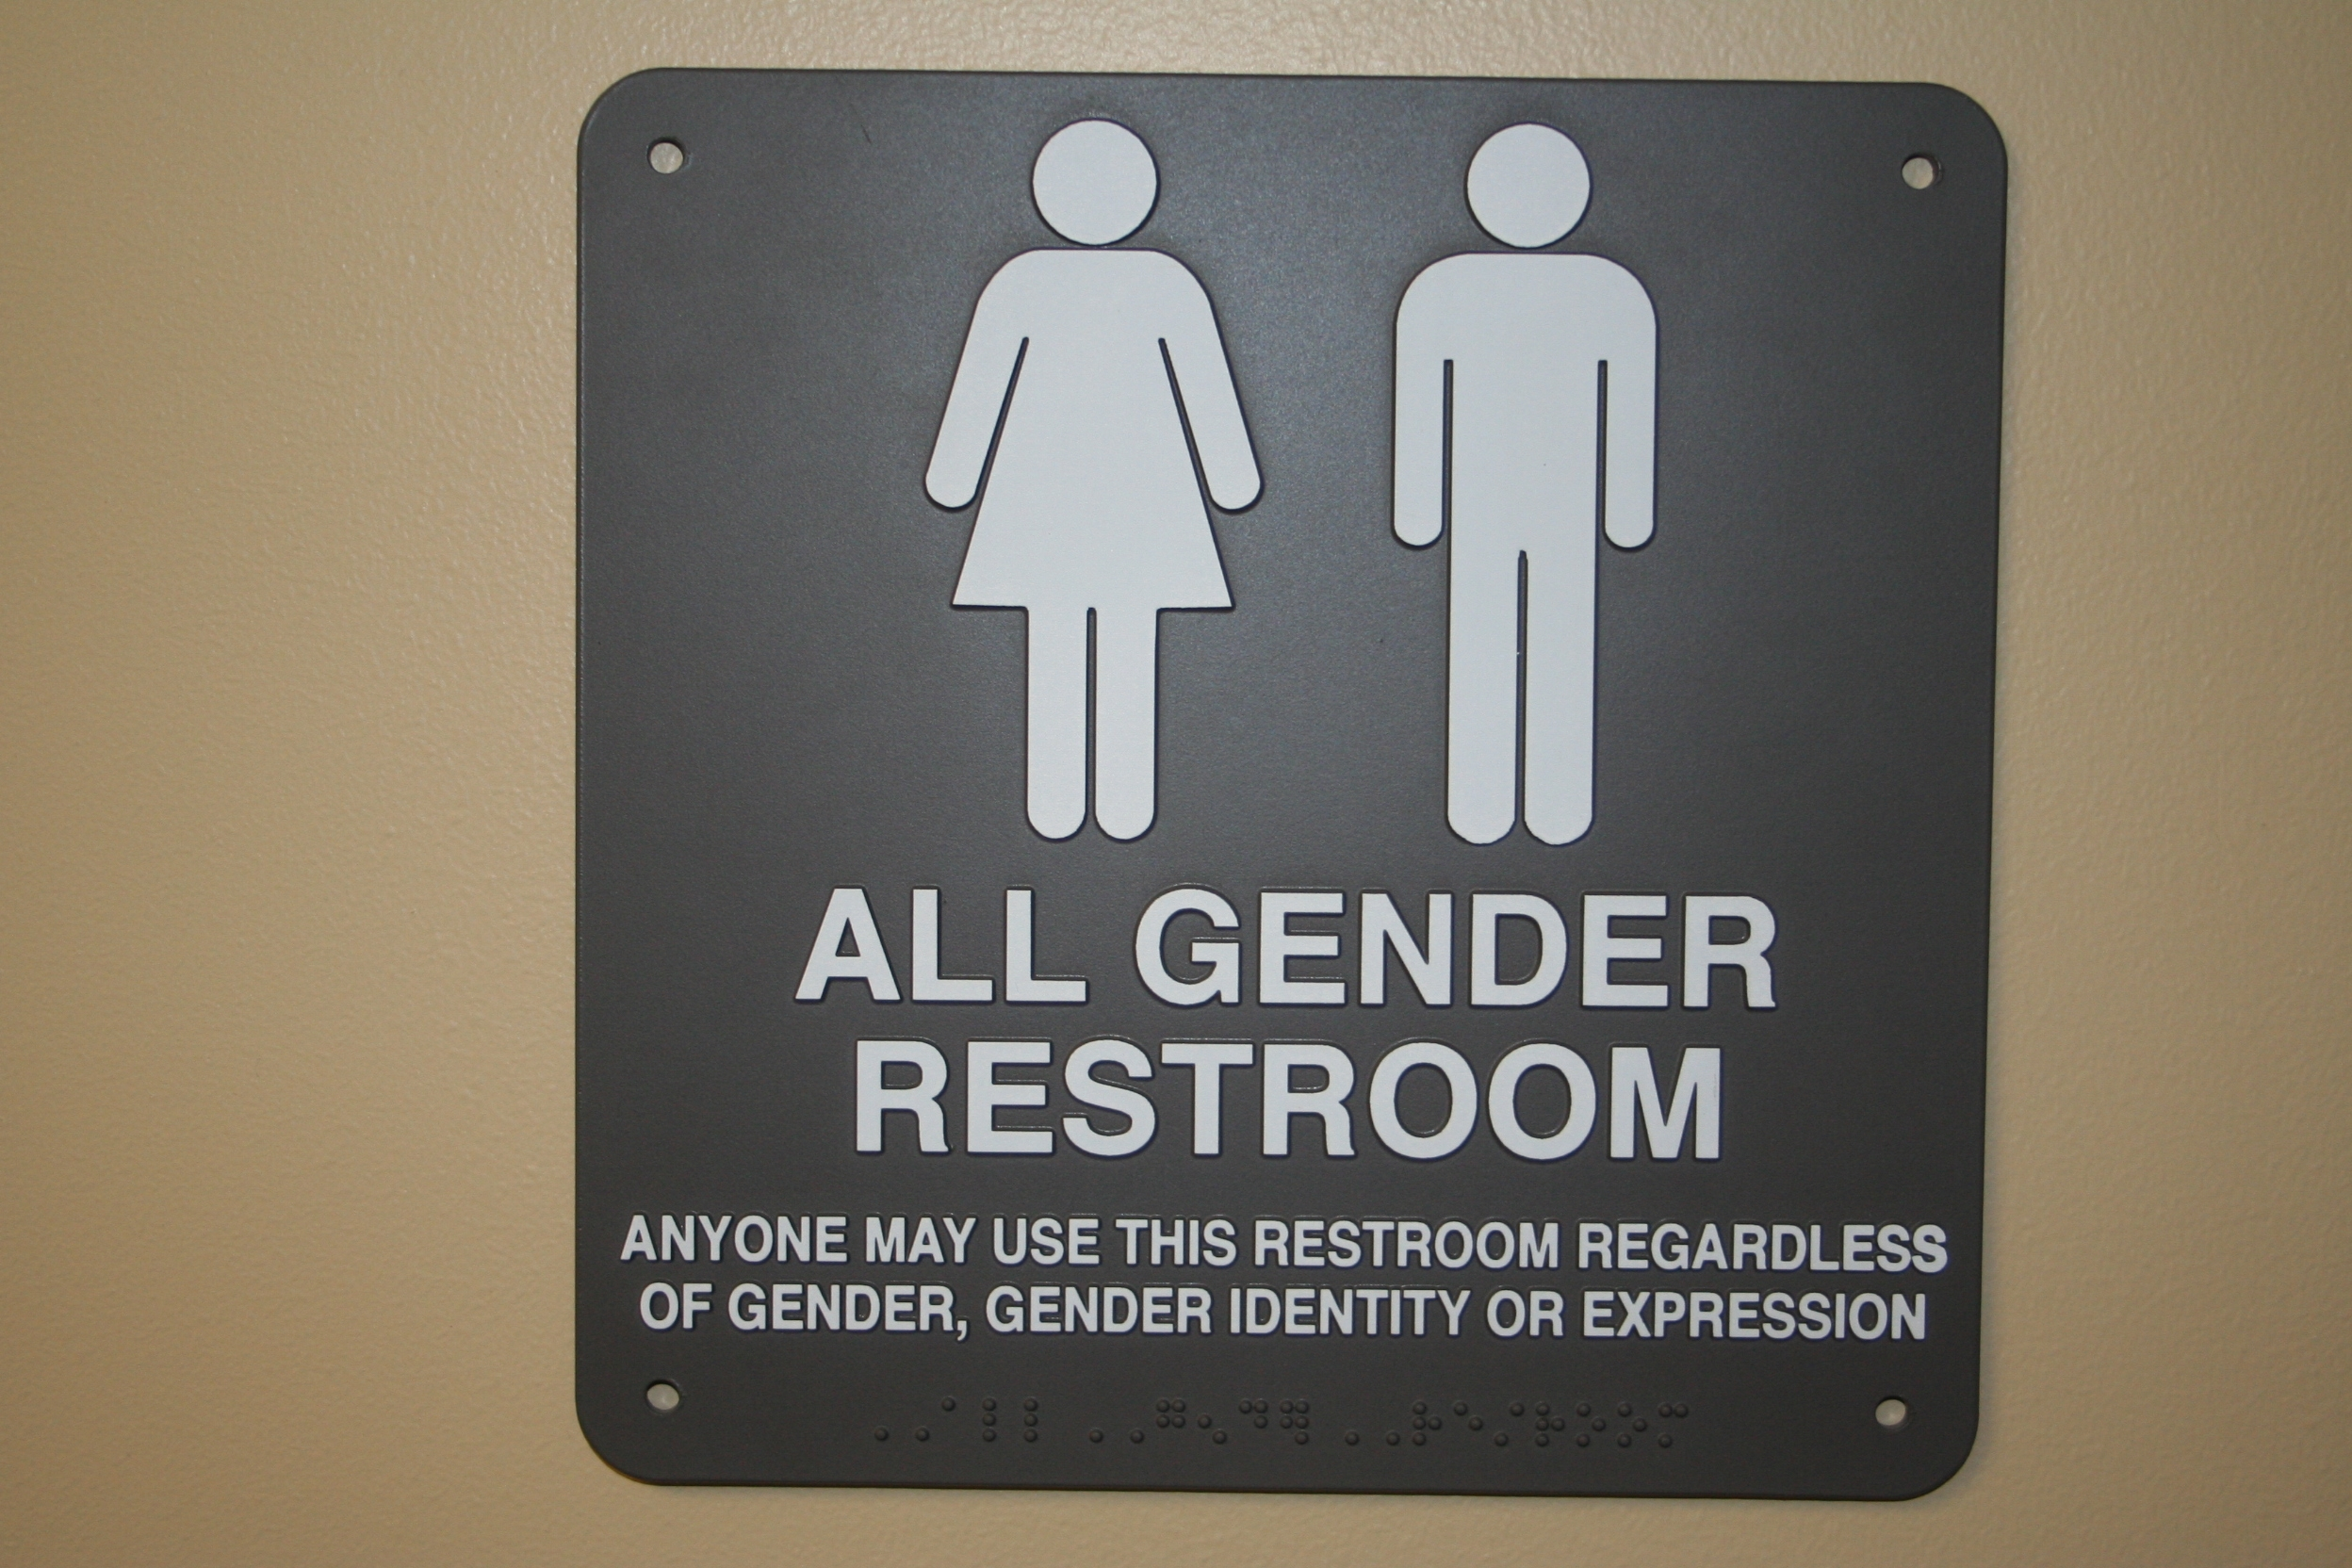 Feds To Spend Millions To Remove He And She From Regs To Avoid Gender Binary